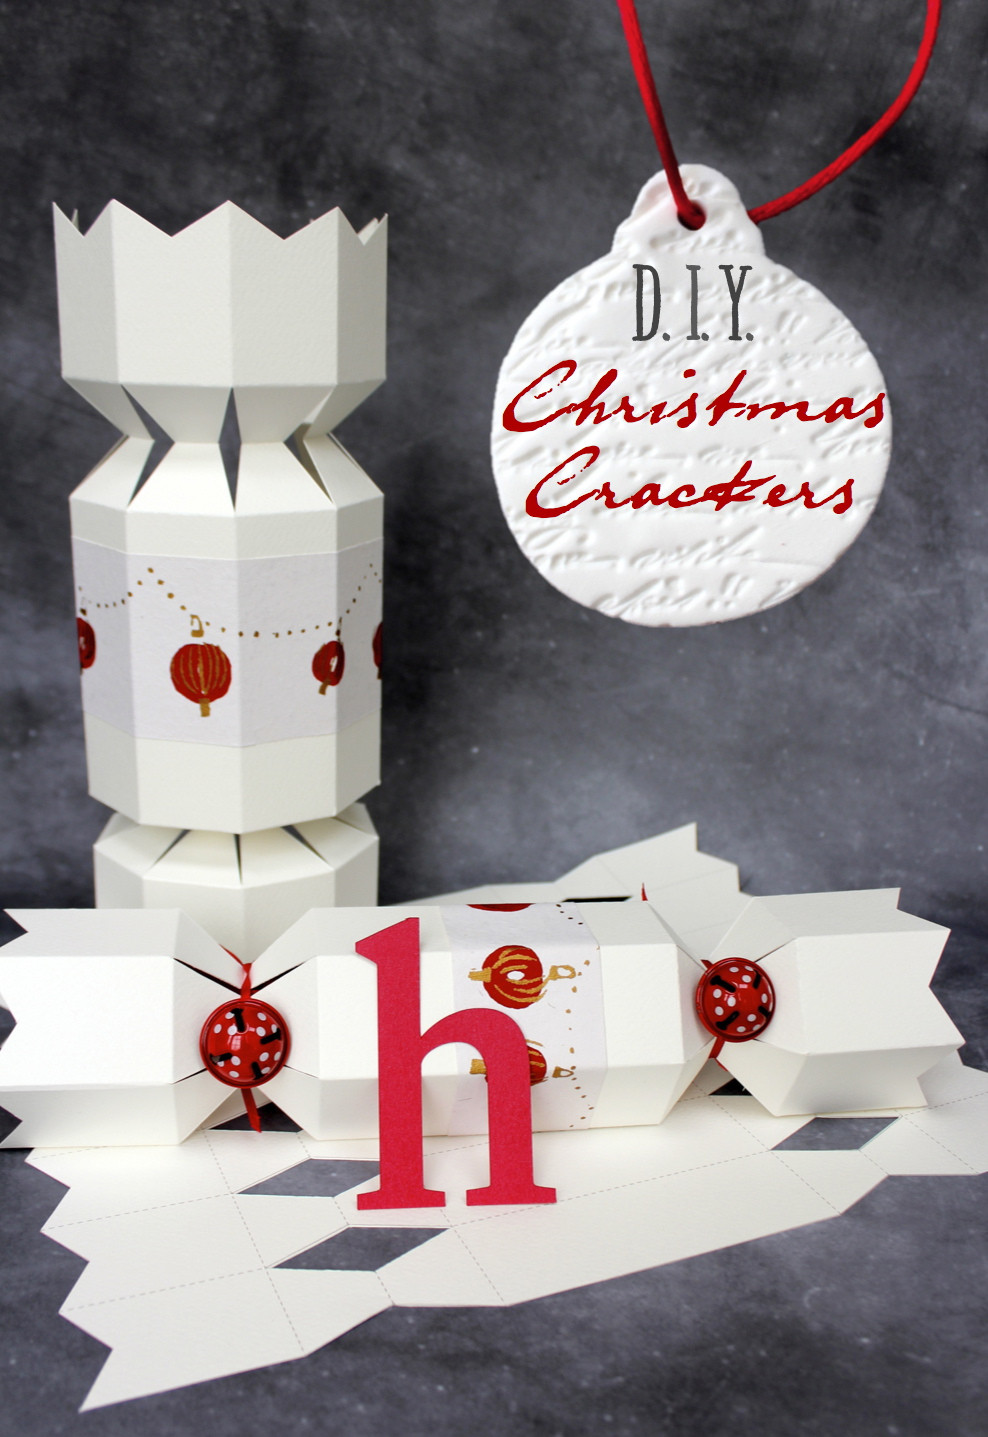 Christmas Crackers Diy  A Cracking Christmas